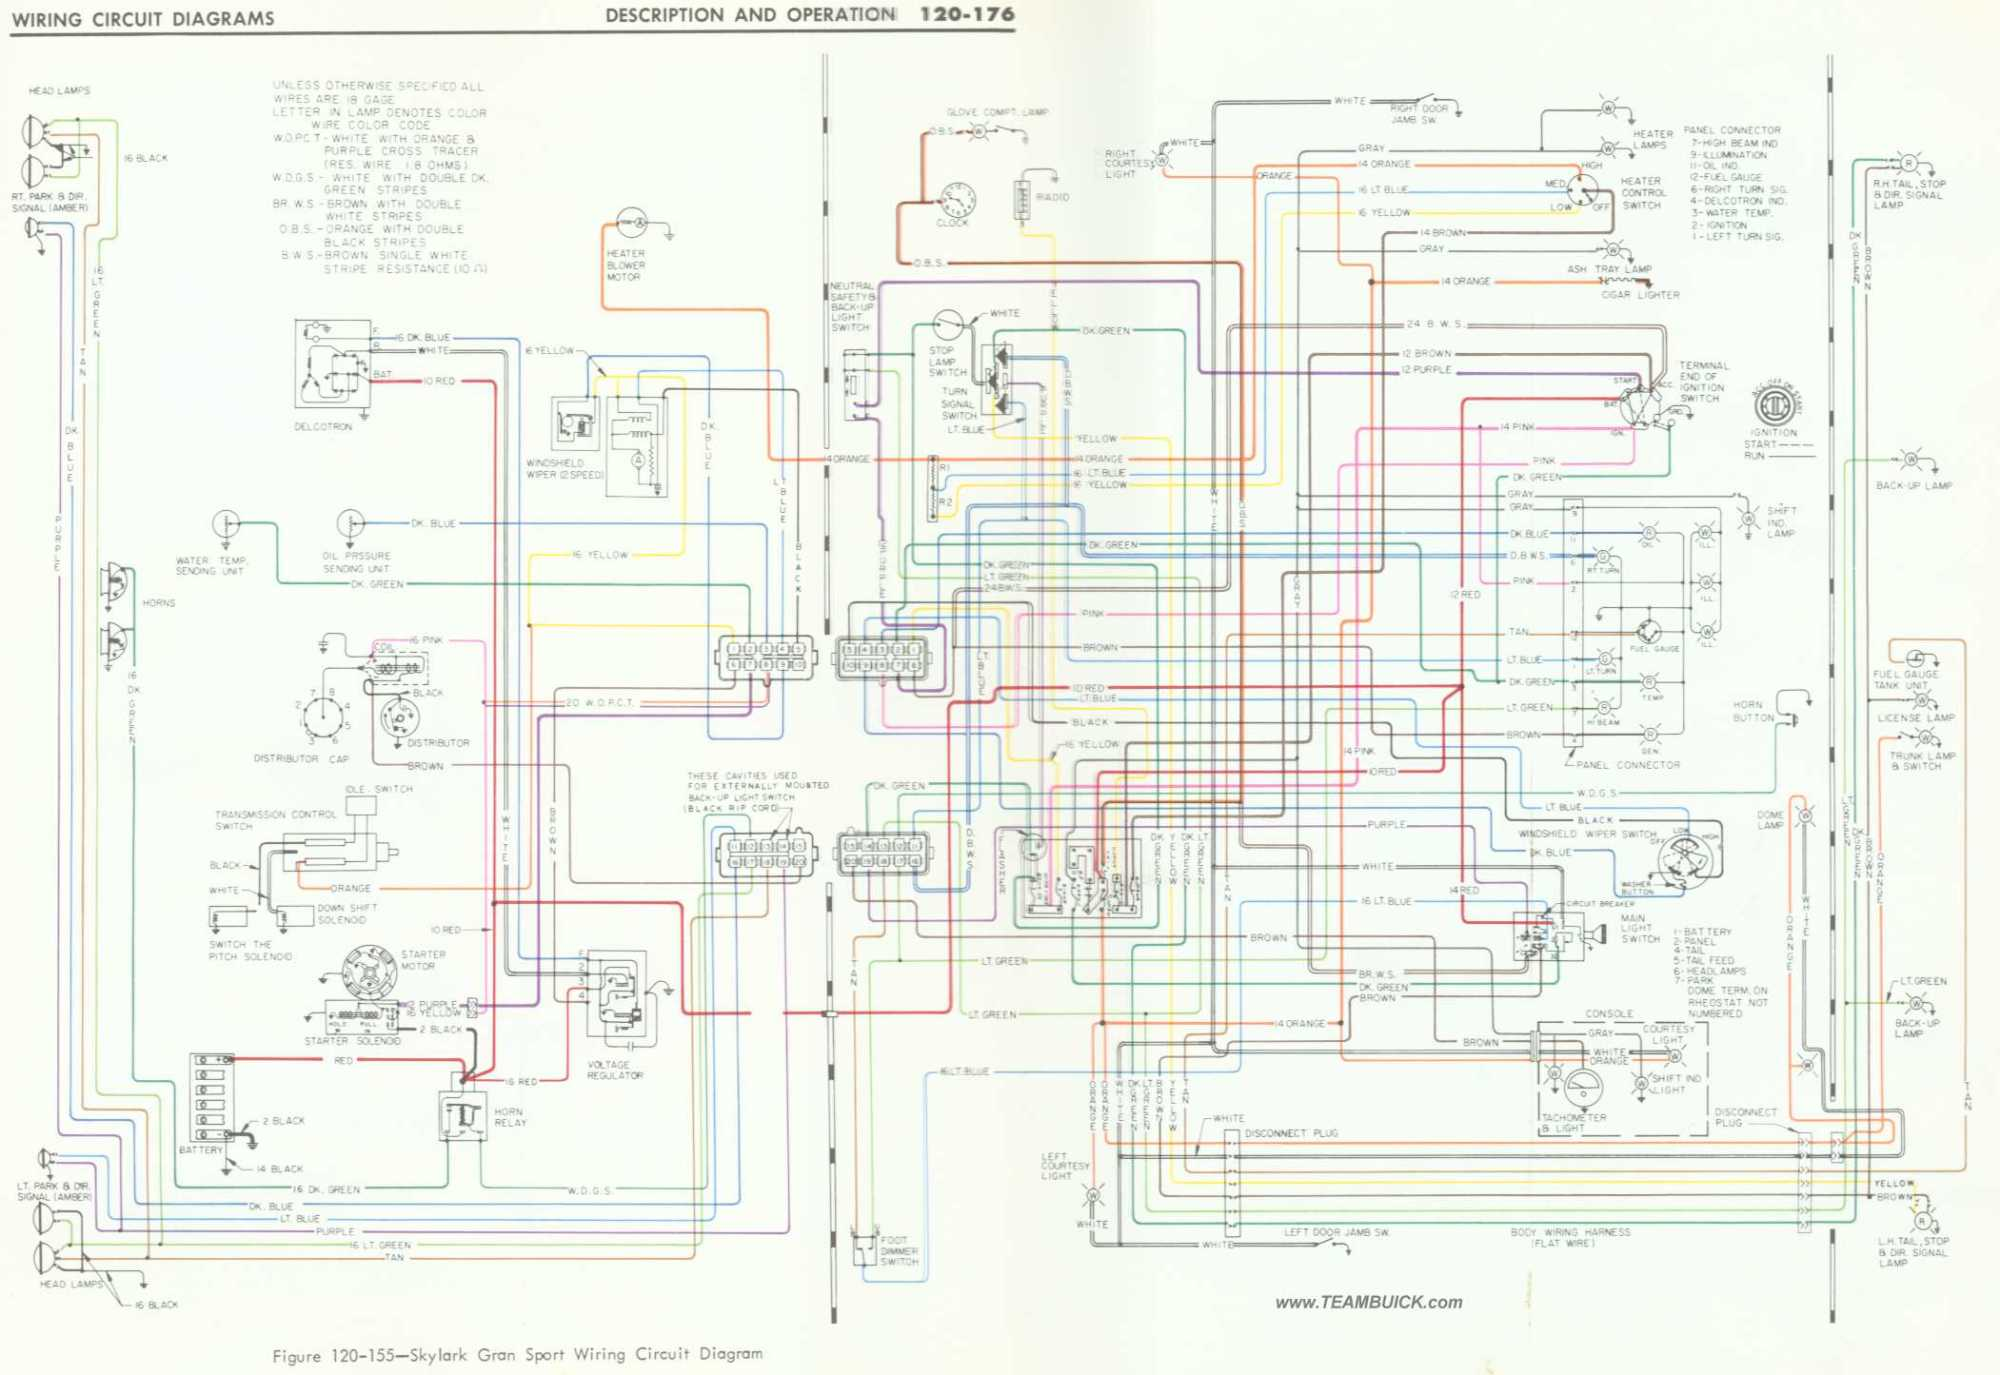 hight resolution of wiring diagram 1972 buick skylark 1971 buick skylark wiring diagram 1972 buick skylark